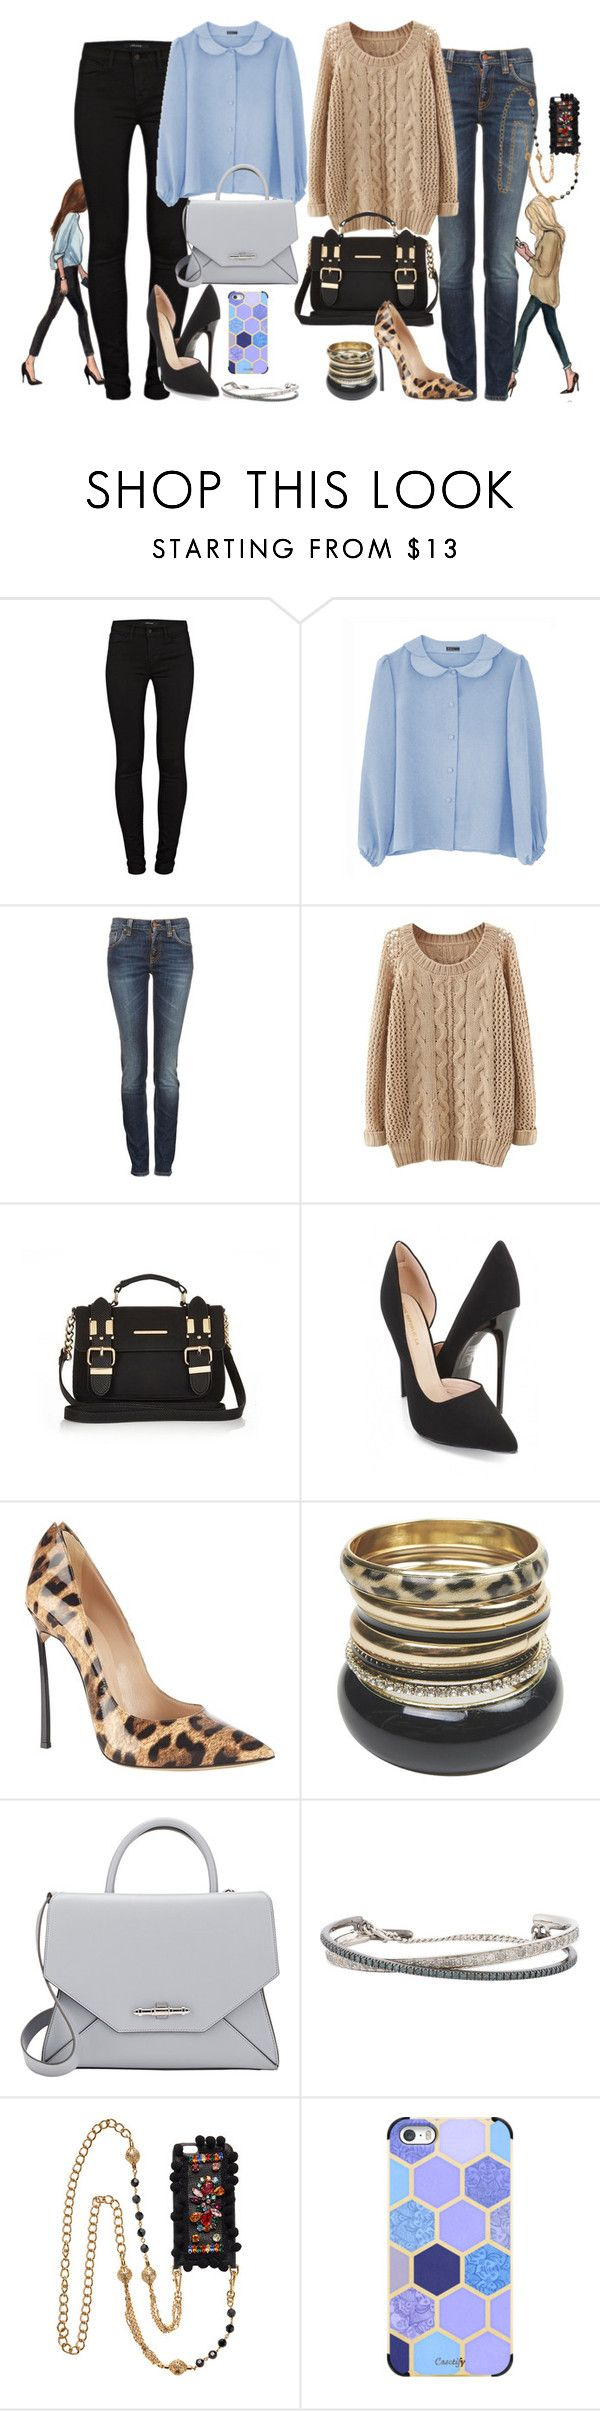 """""""Untitled #2618"""" by fashion-nova ❤ liked on Polyvore featuring moda, J Brand, Nudie Jeans Co., River Island, Casadei, Wet Seal, Givenchy, Roberto Marroni, Dolce&Gabbana y Casetify"""